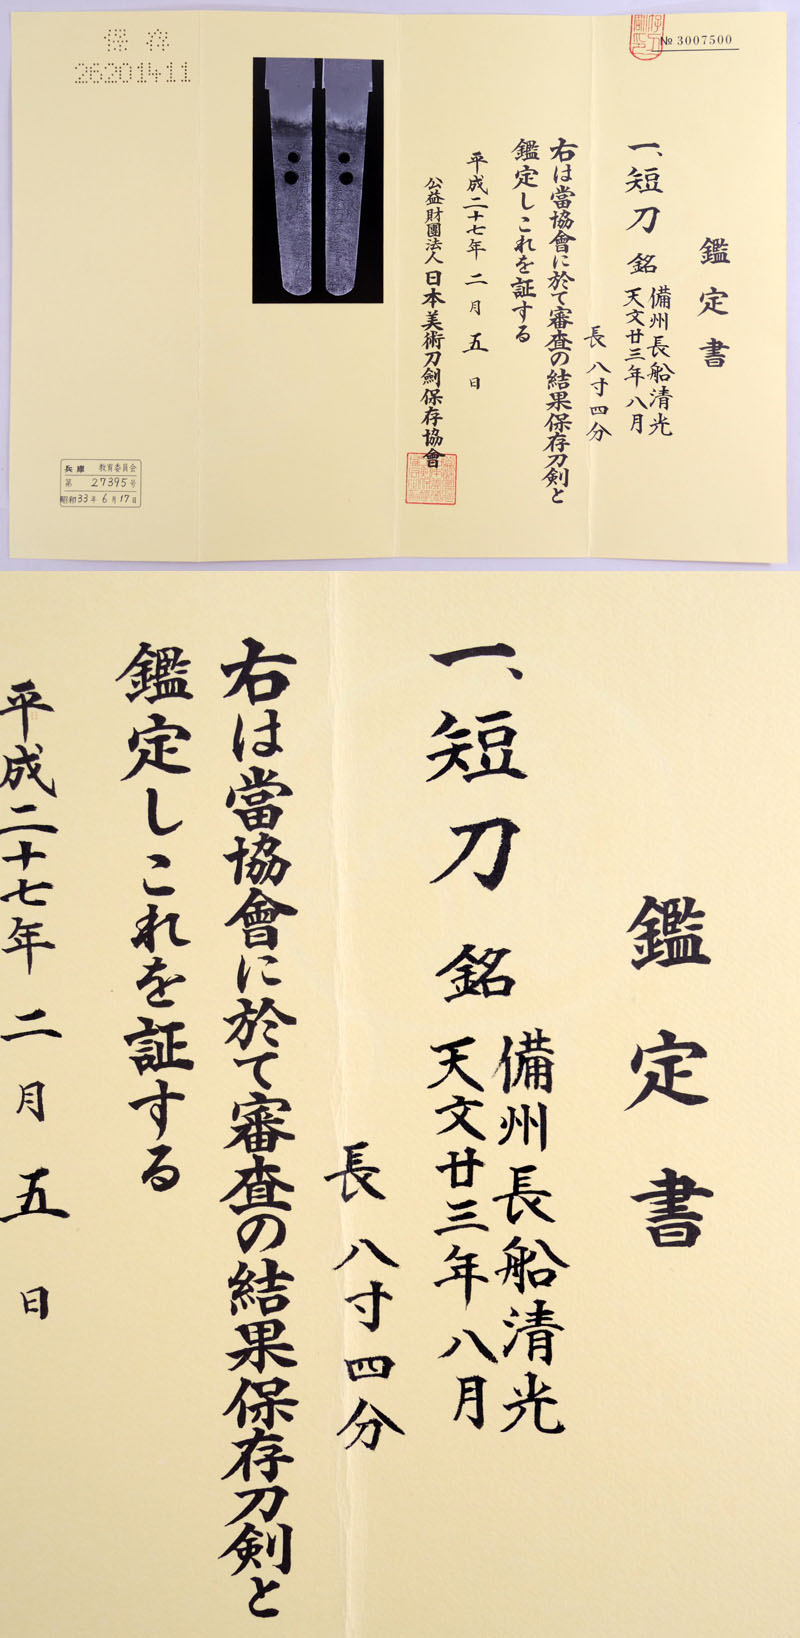 備州長船清光 Picture of Certificate